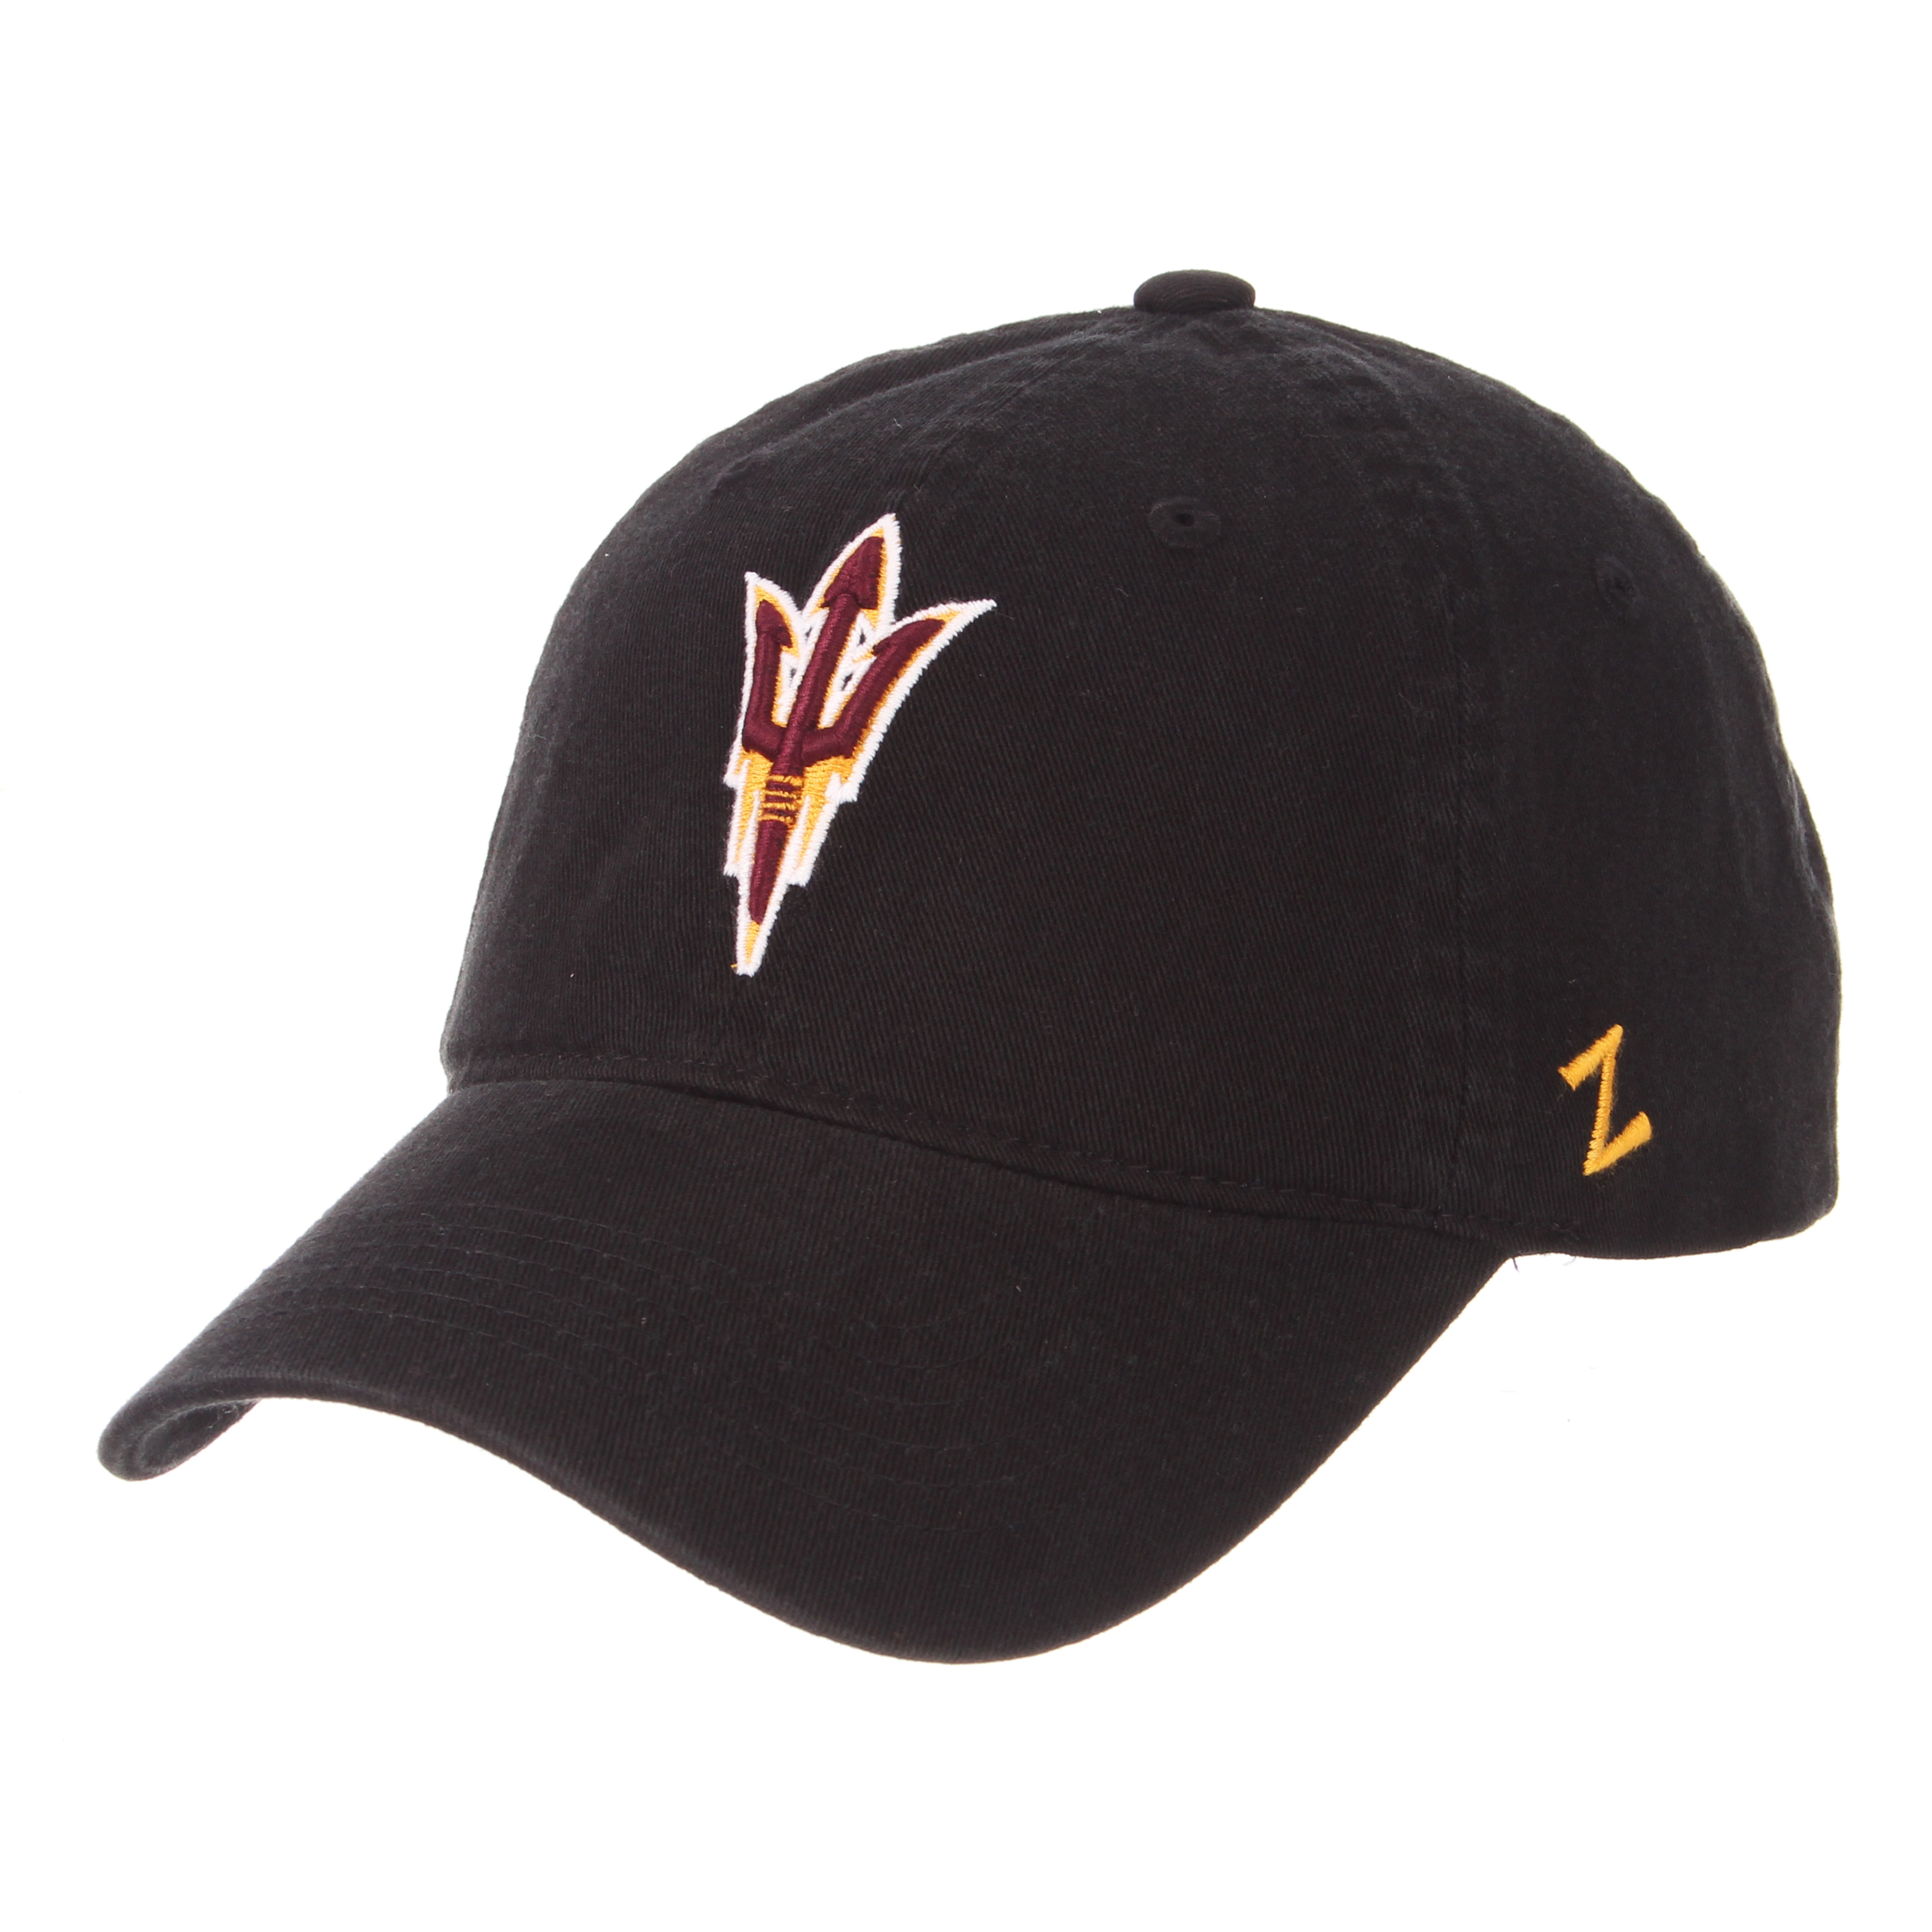 Arizona State (ASU) Scholarship